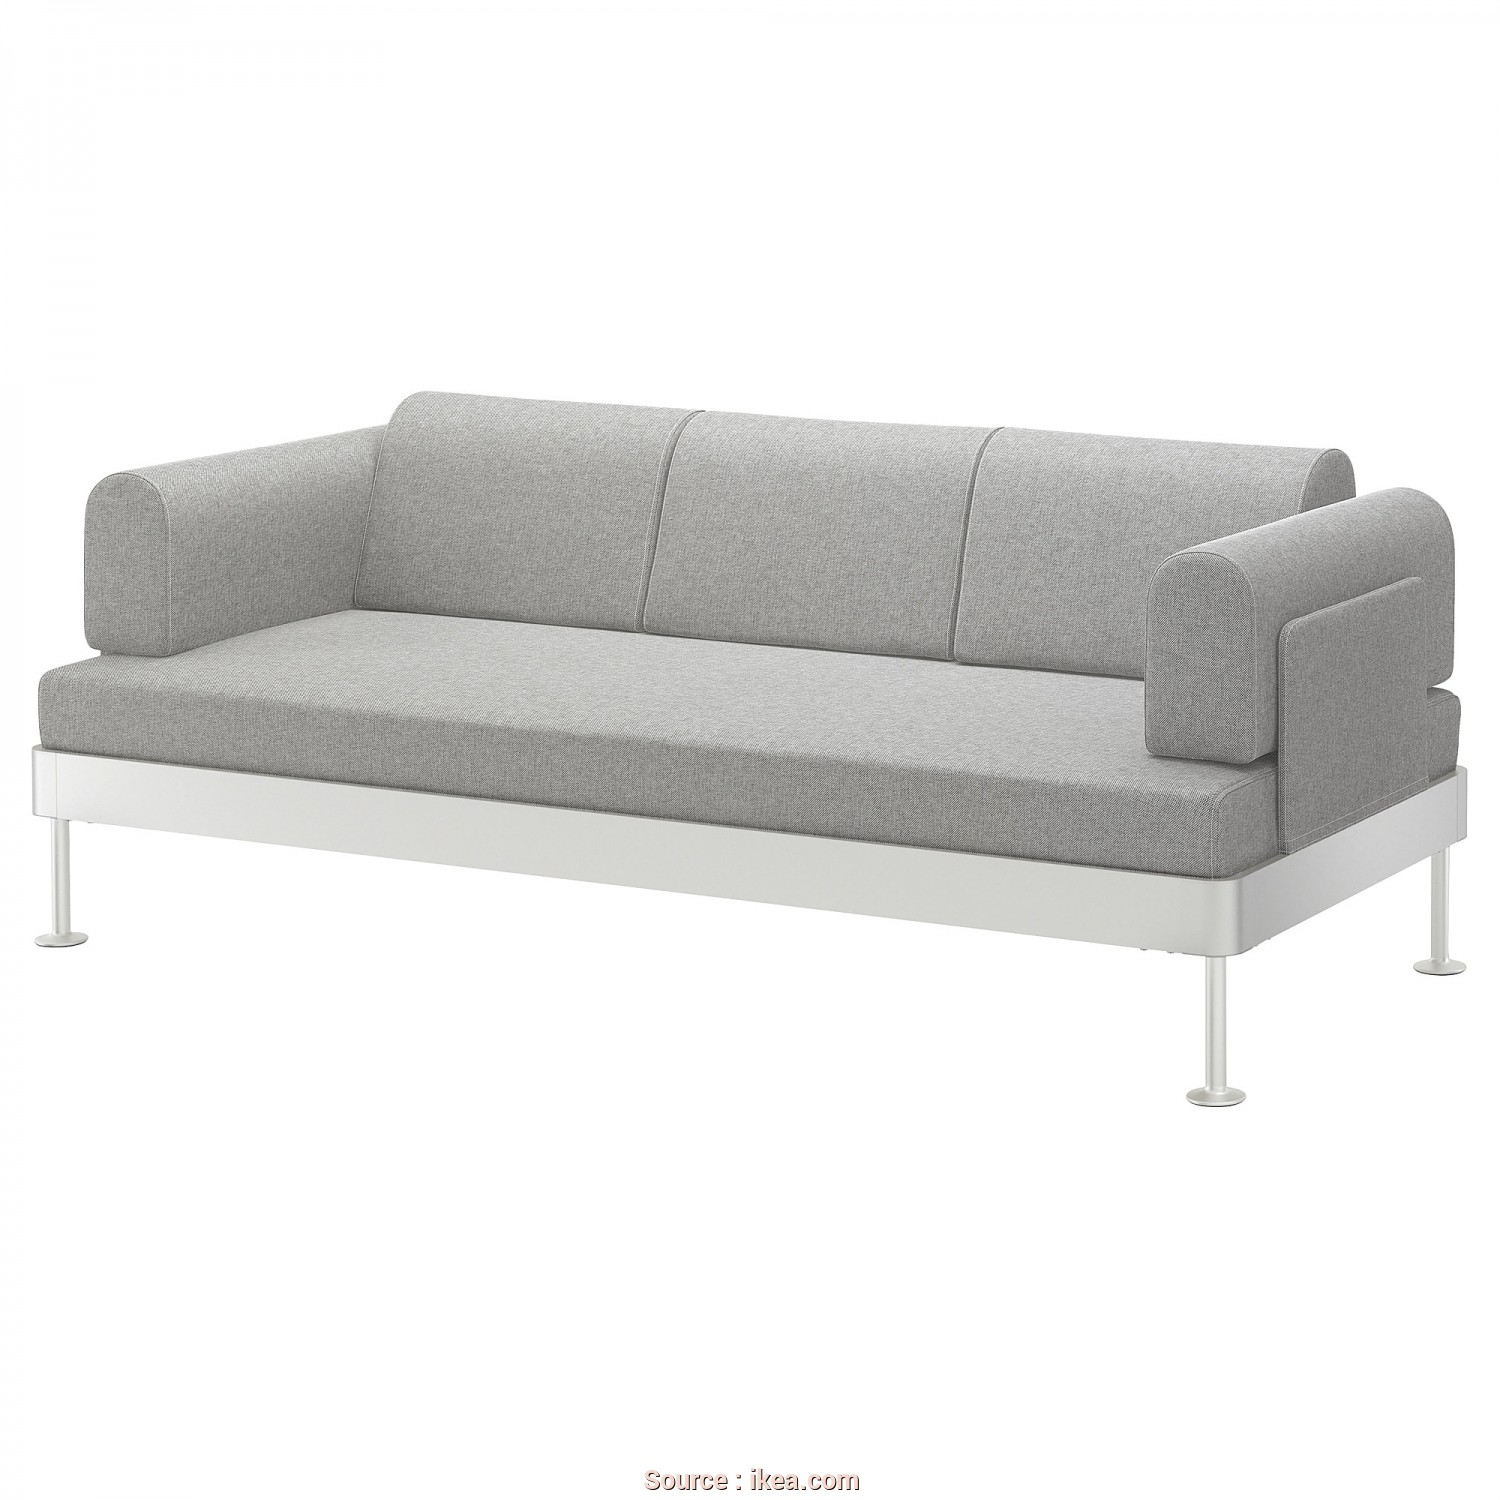 Ikea 3 Seater Futon Sofa Bed, Maestoso IKEA DELAKTIG 3-Seat Sofa, Cover Is Easy To Keep Clean As It Is